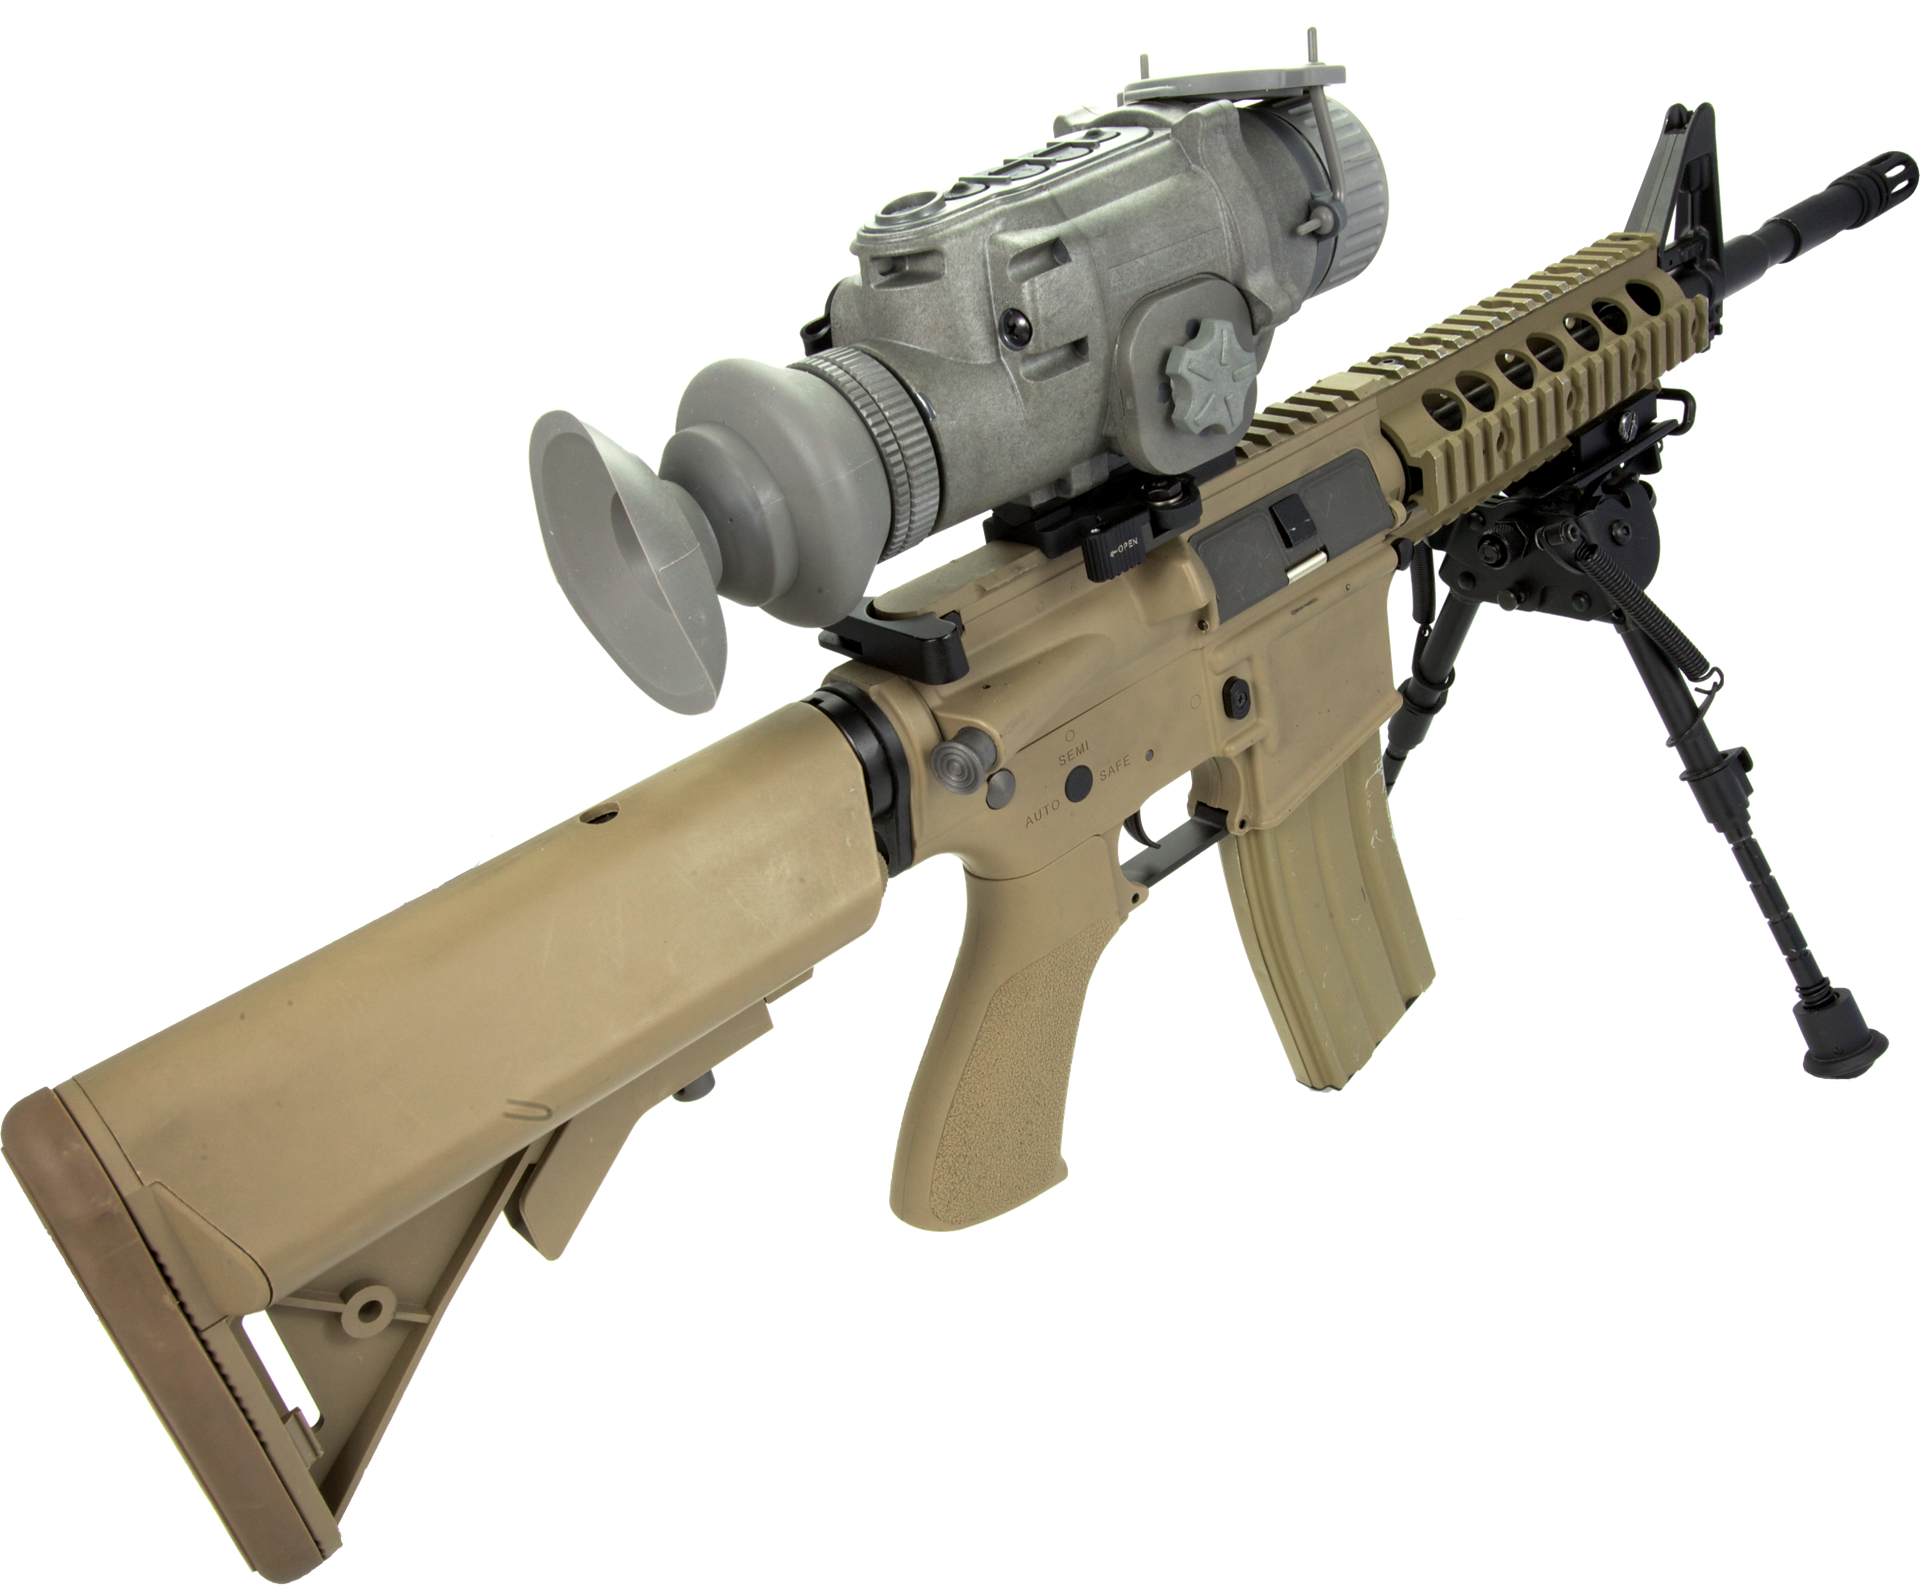 Weapon clip machine gun. The lwts thermal scope